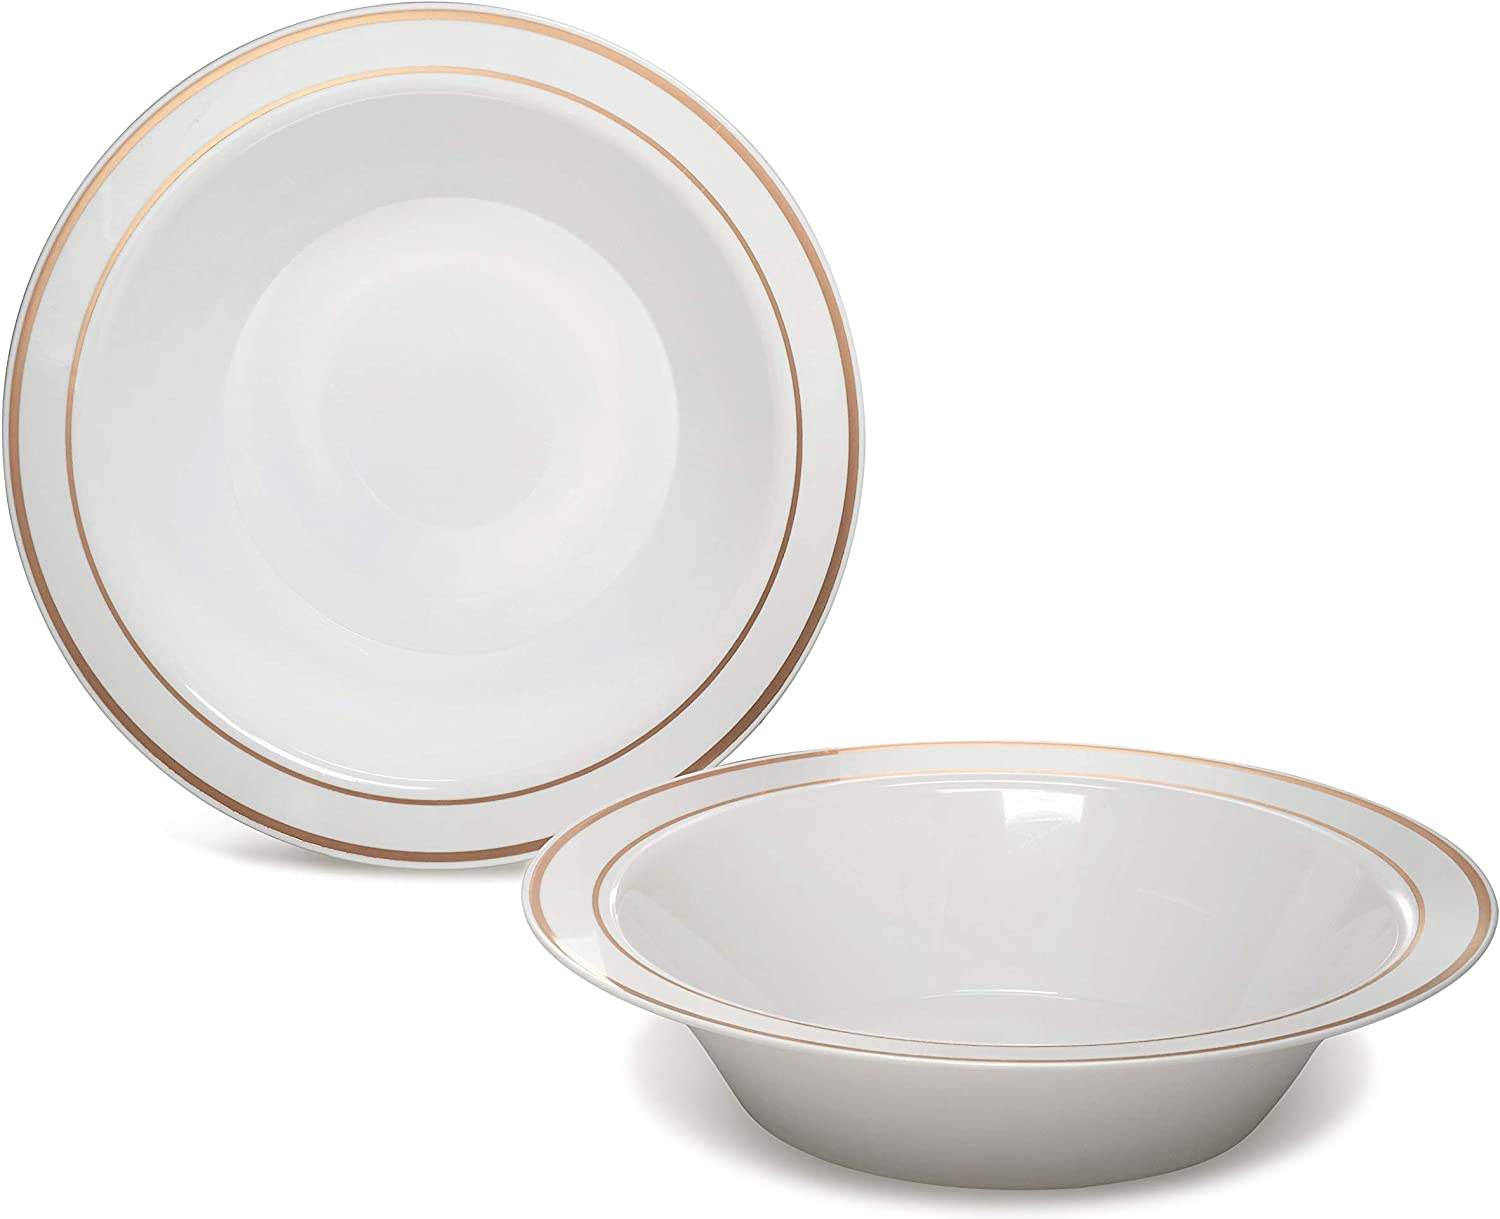 OCCASIONS 120 Bowls Pack, Heavyweight Disposable Wedding Party Plastic Bowls (14oz Soup Bowl, White & Rose Gold Rim)